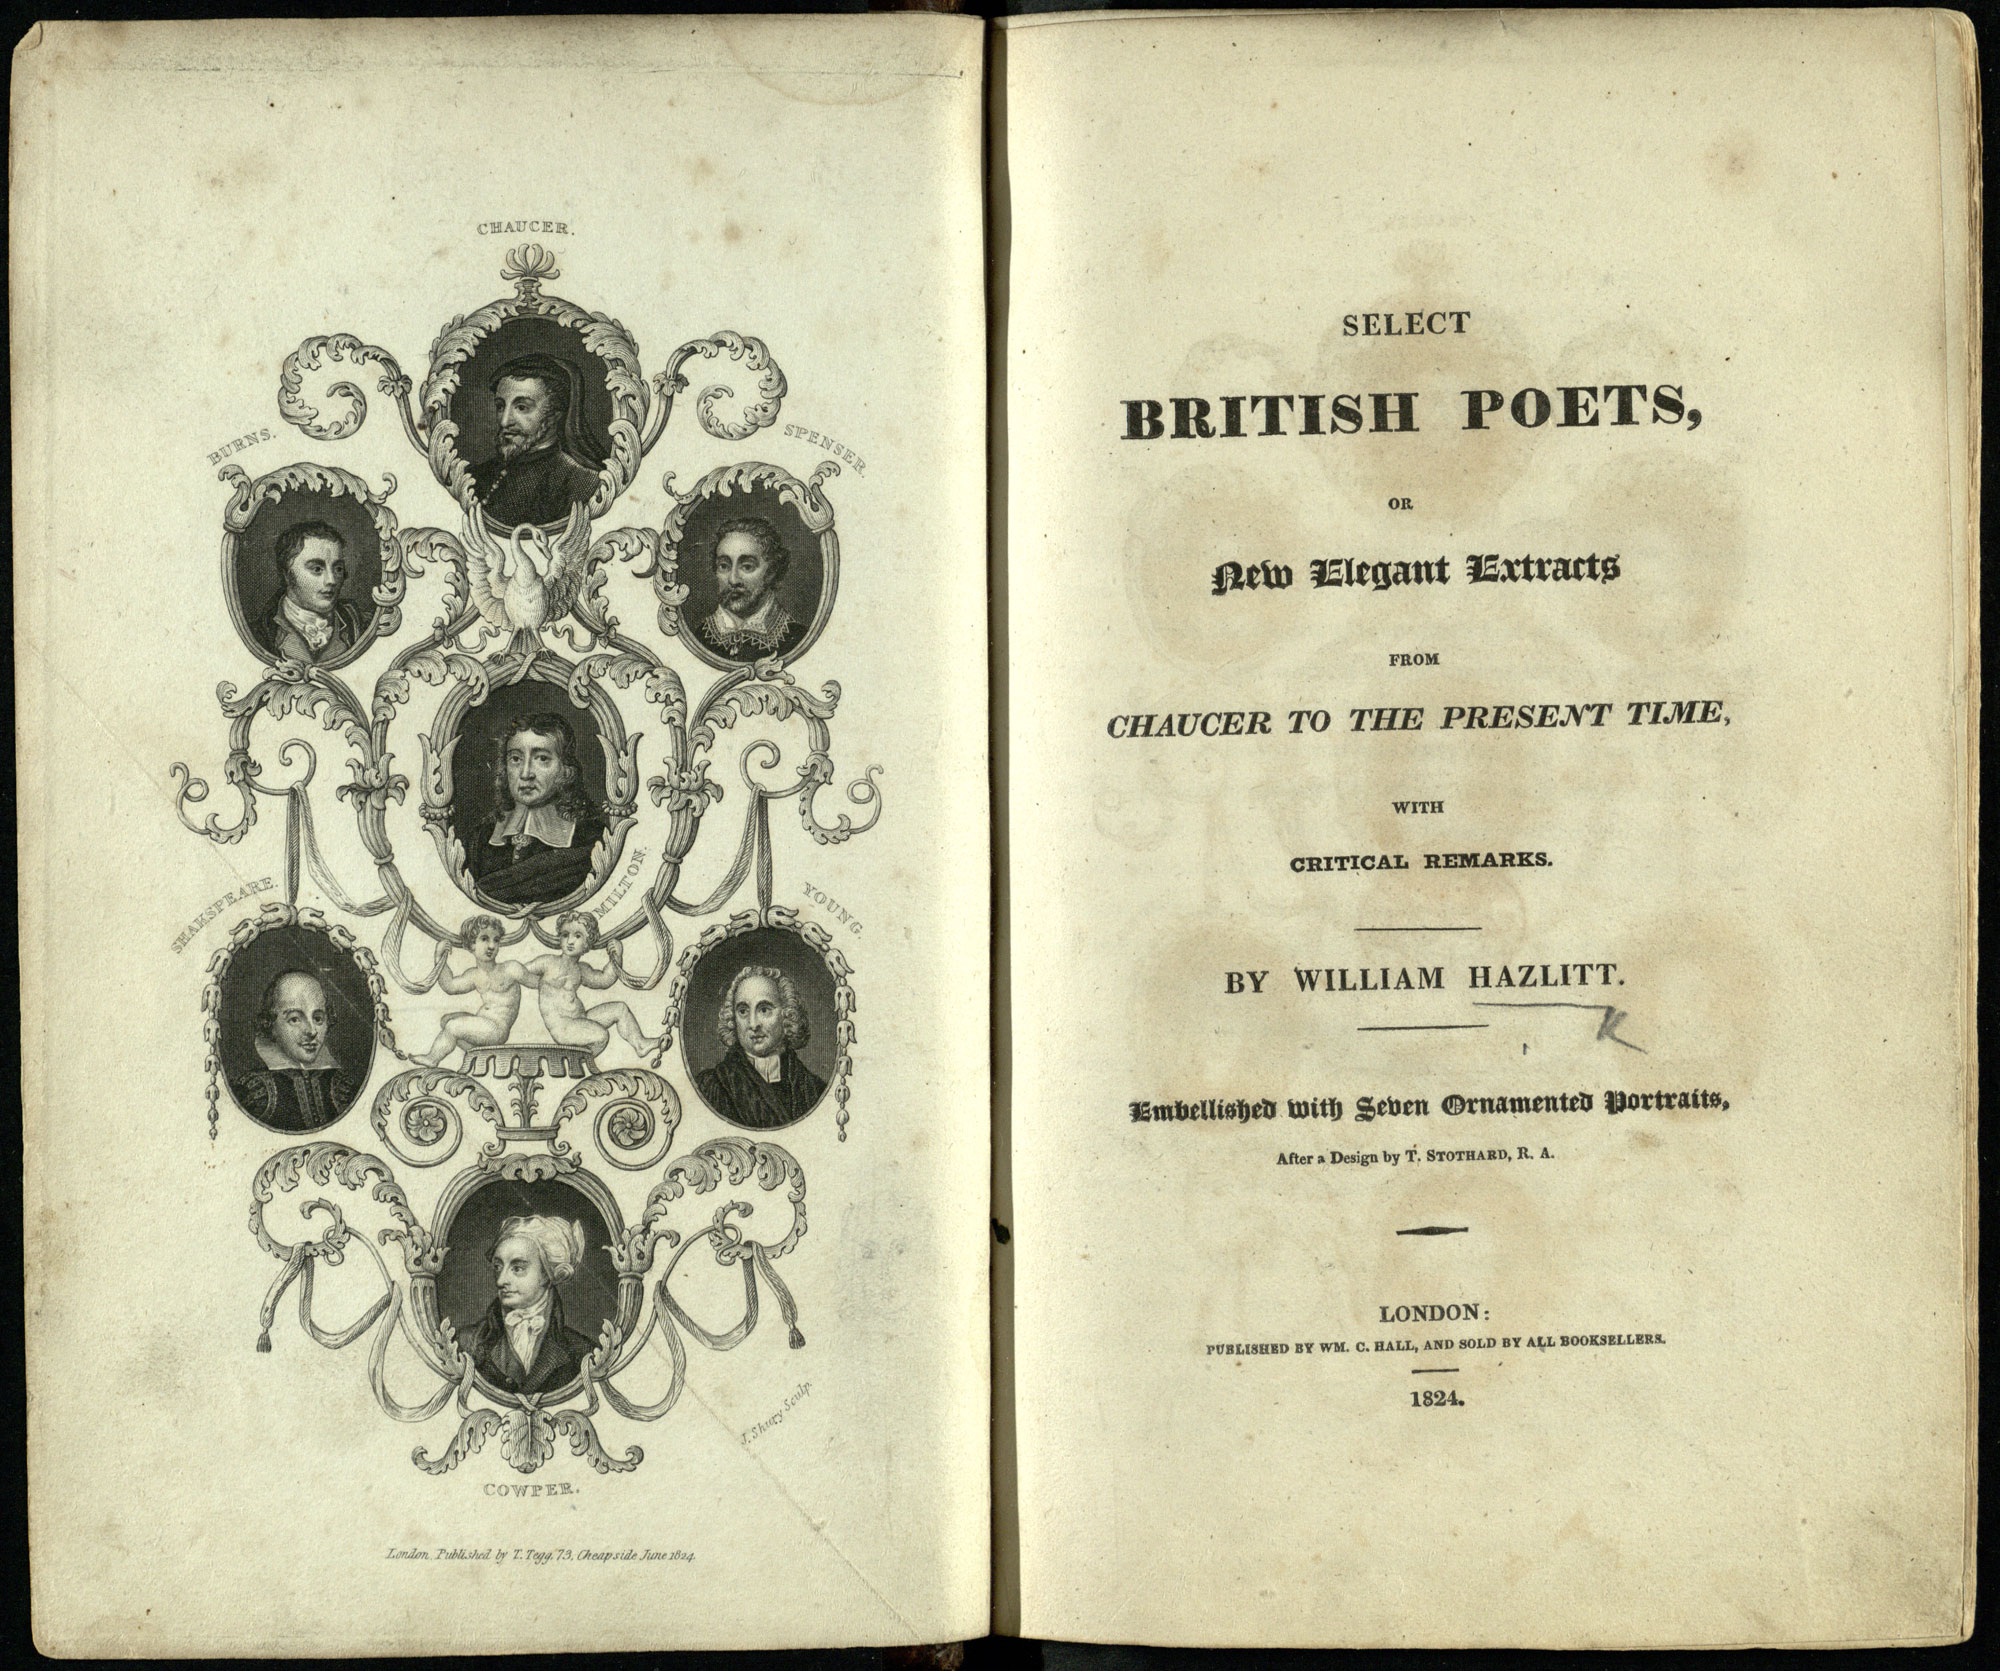 Anthology of British Poets, edited by William Hazlitt